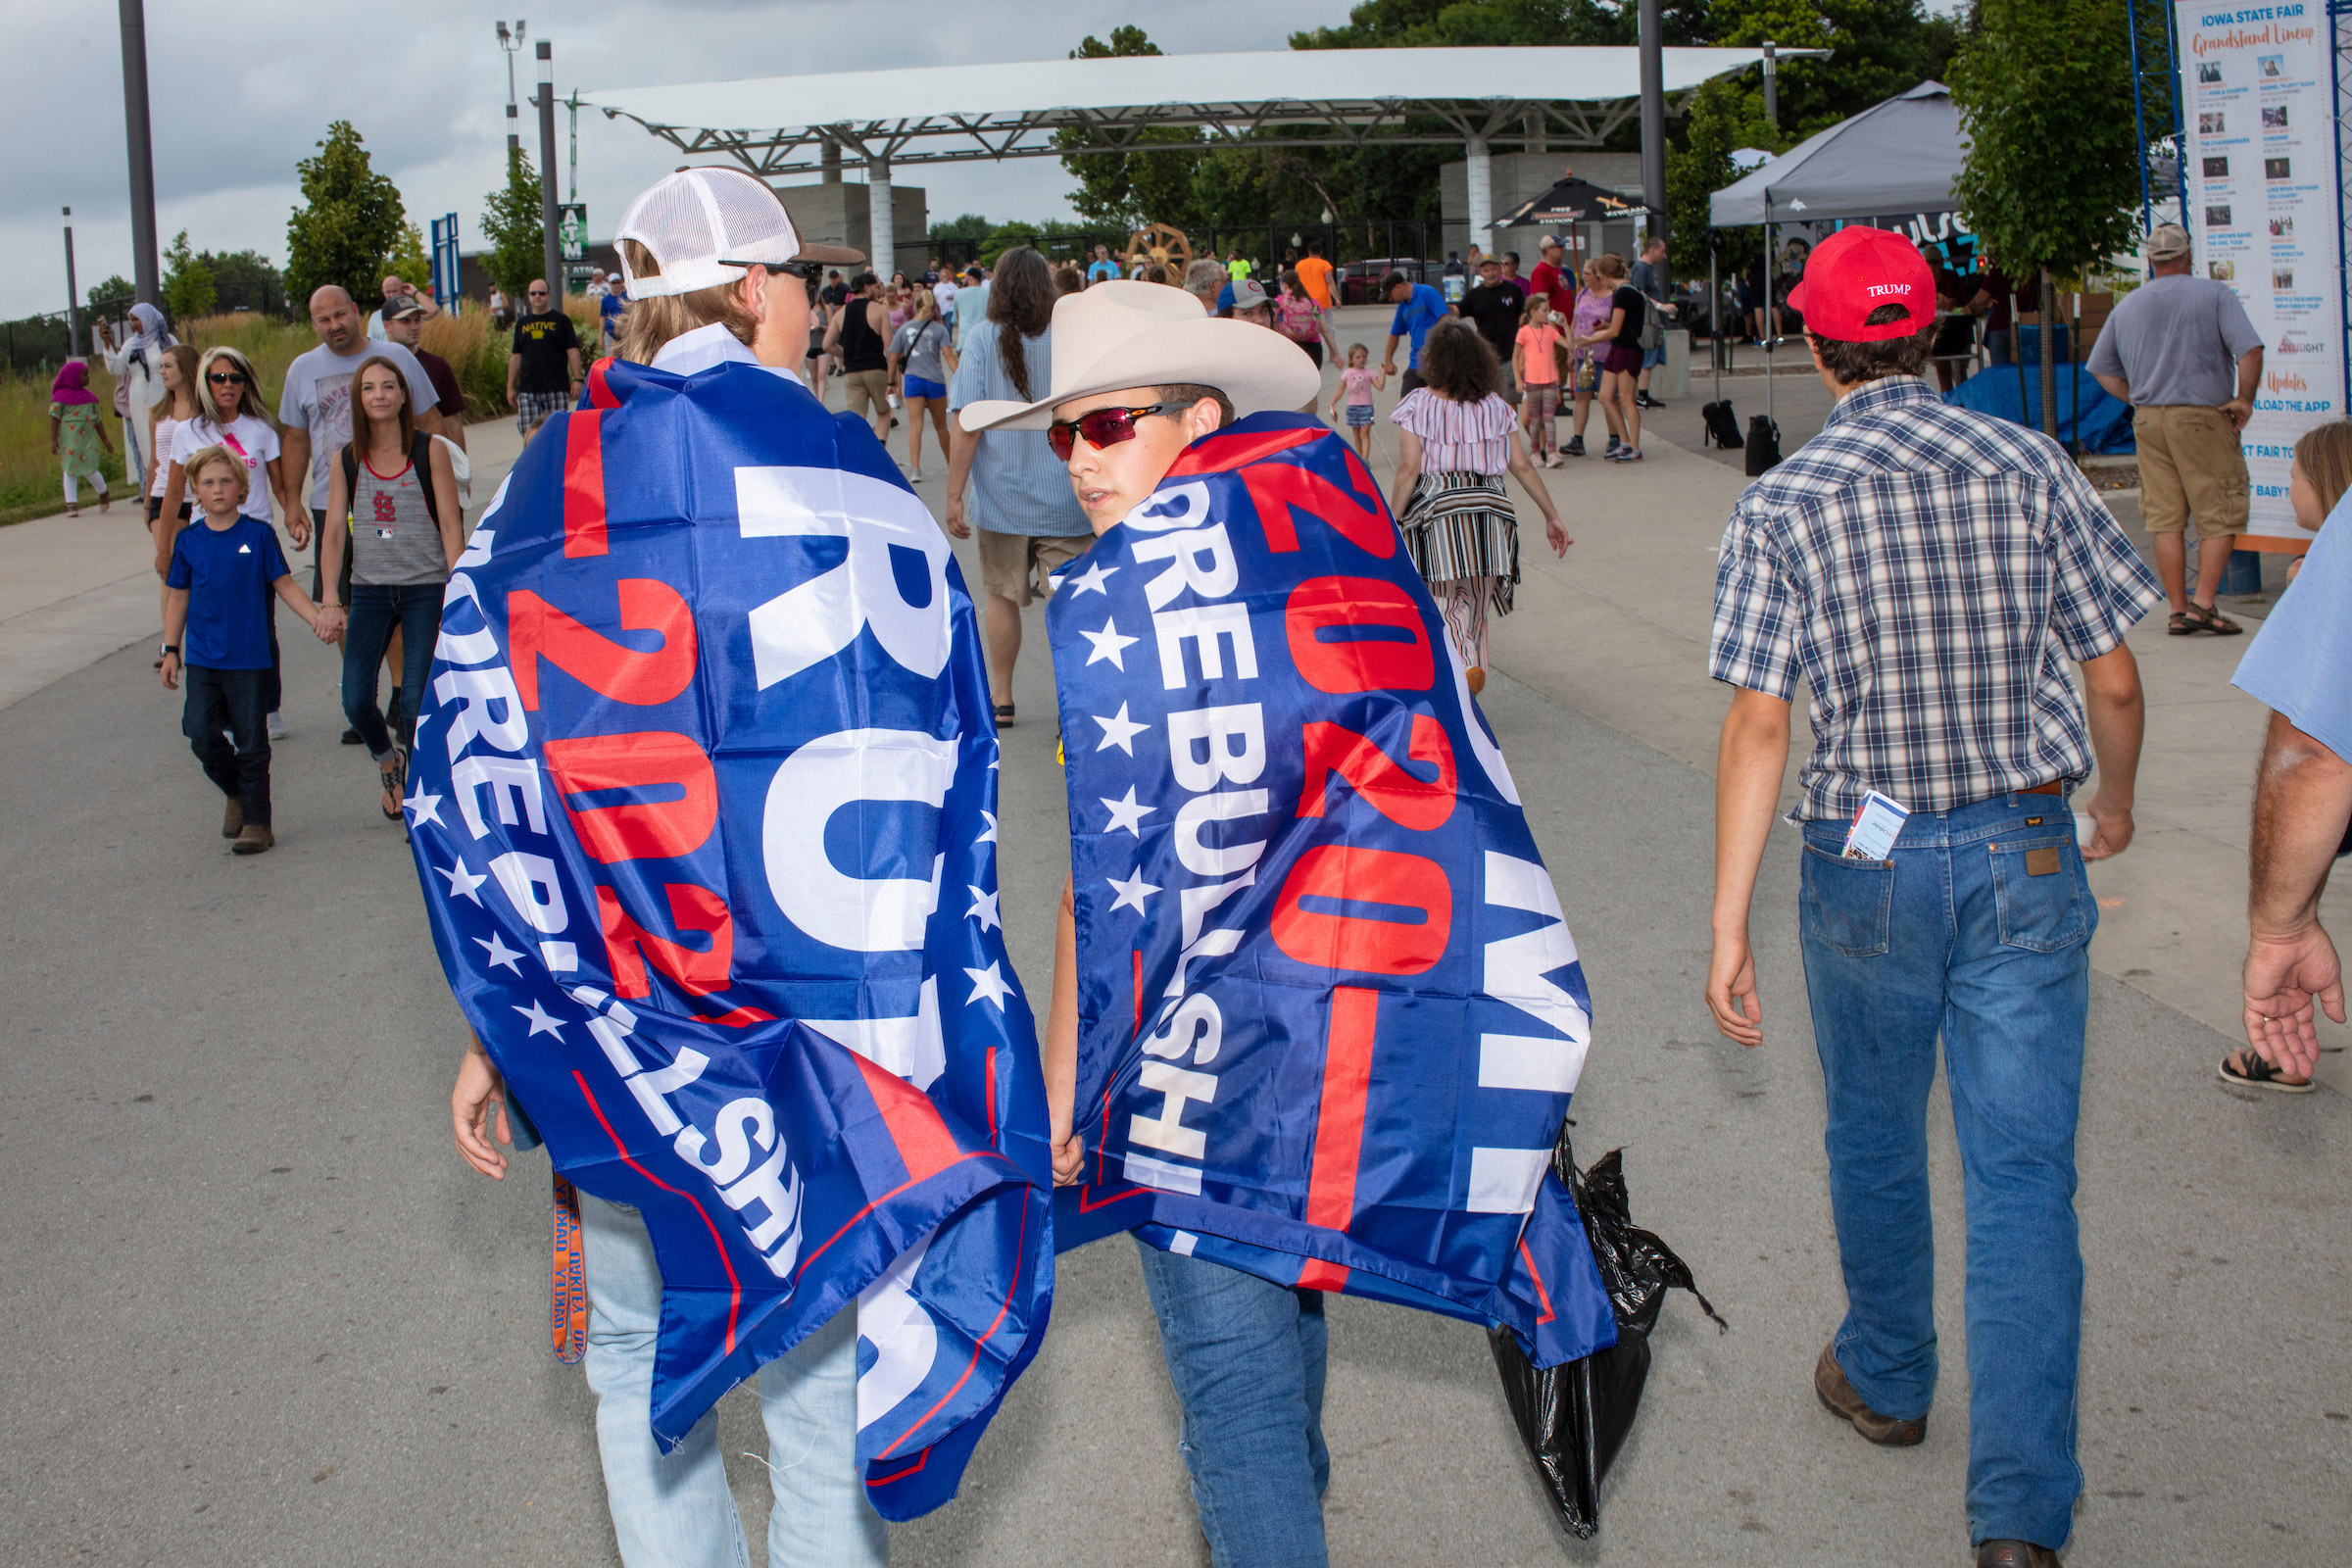 Supporters showed their support for President Donald Trump at the Iowa State Fair on Aug. 11.